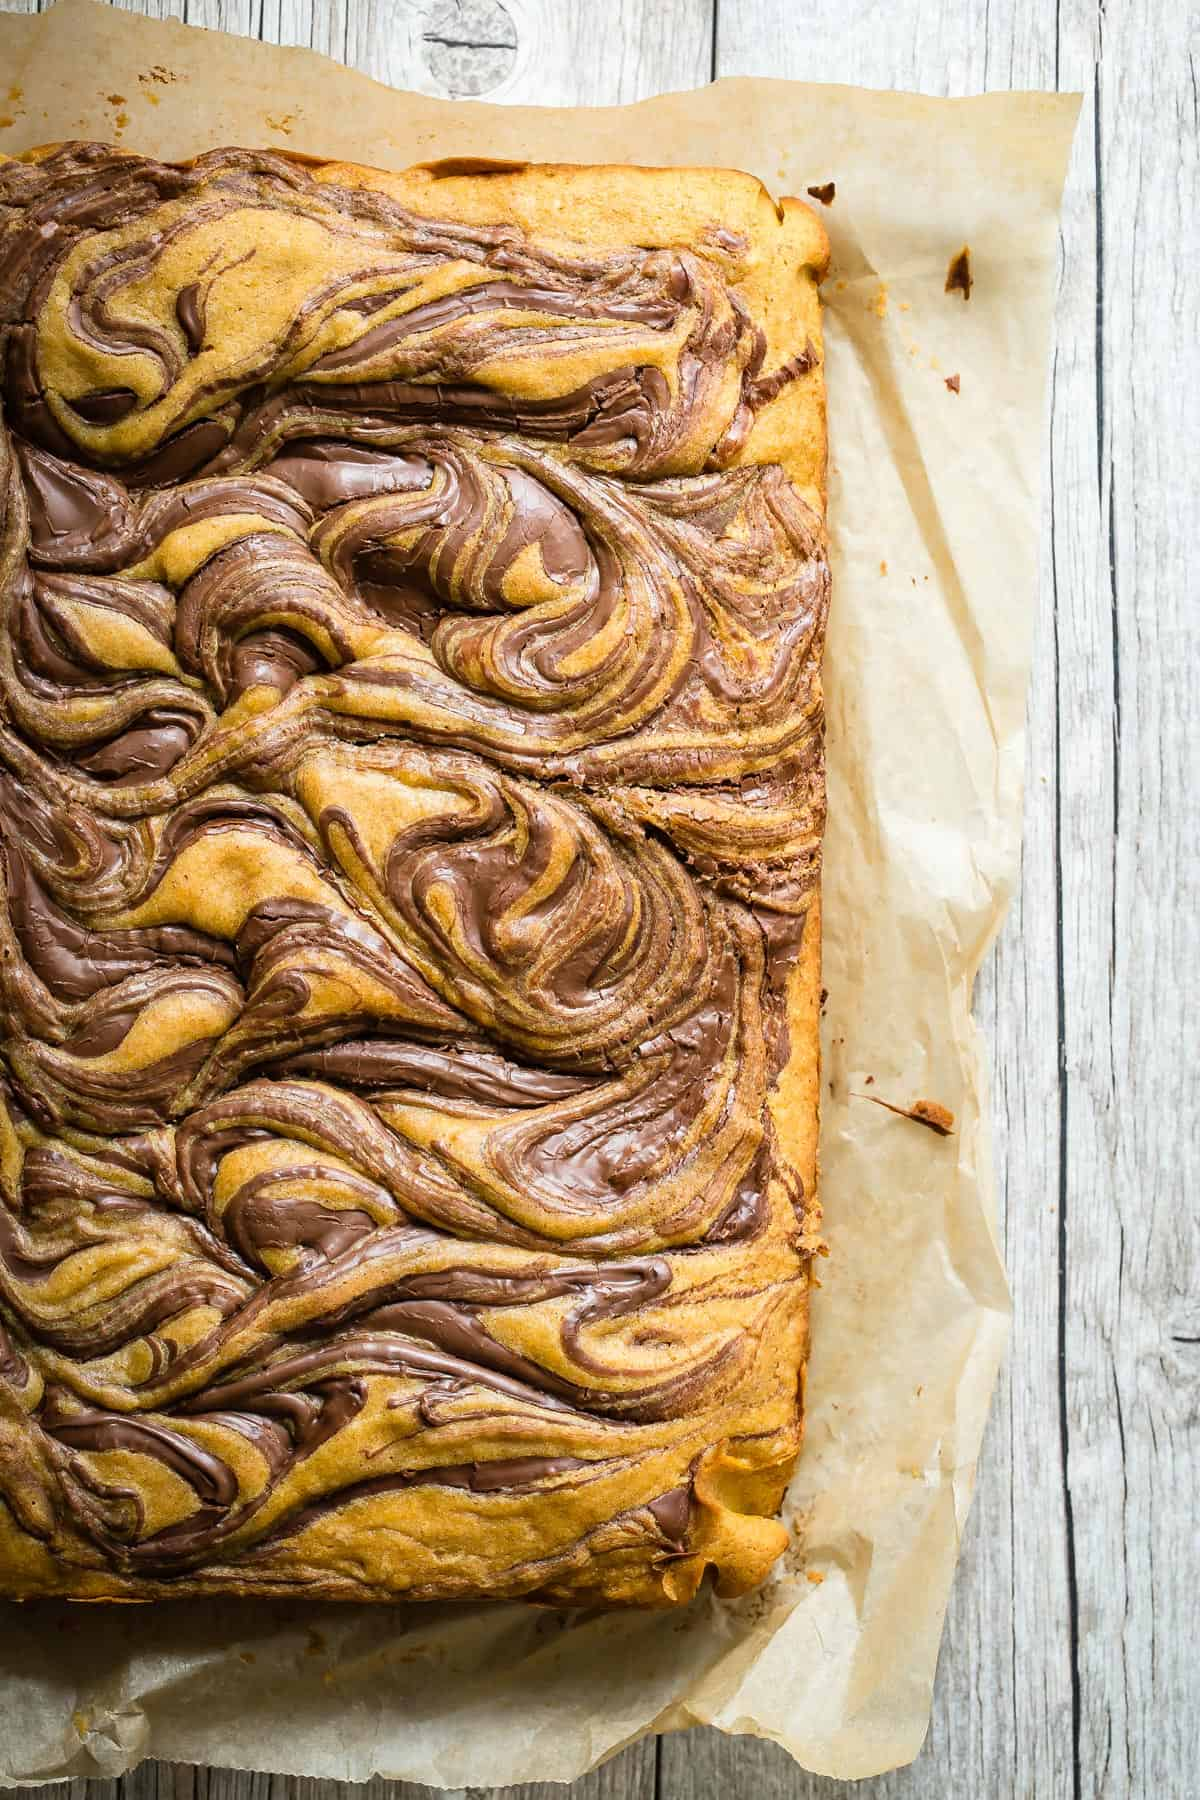 These Pumpkin Nutella Bars have the same consistency as a moist pumpkin bread, but with ribbons of creamy Nutella chocolate swirled through the batter! These won't hang around long after you make them.